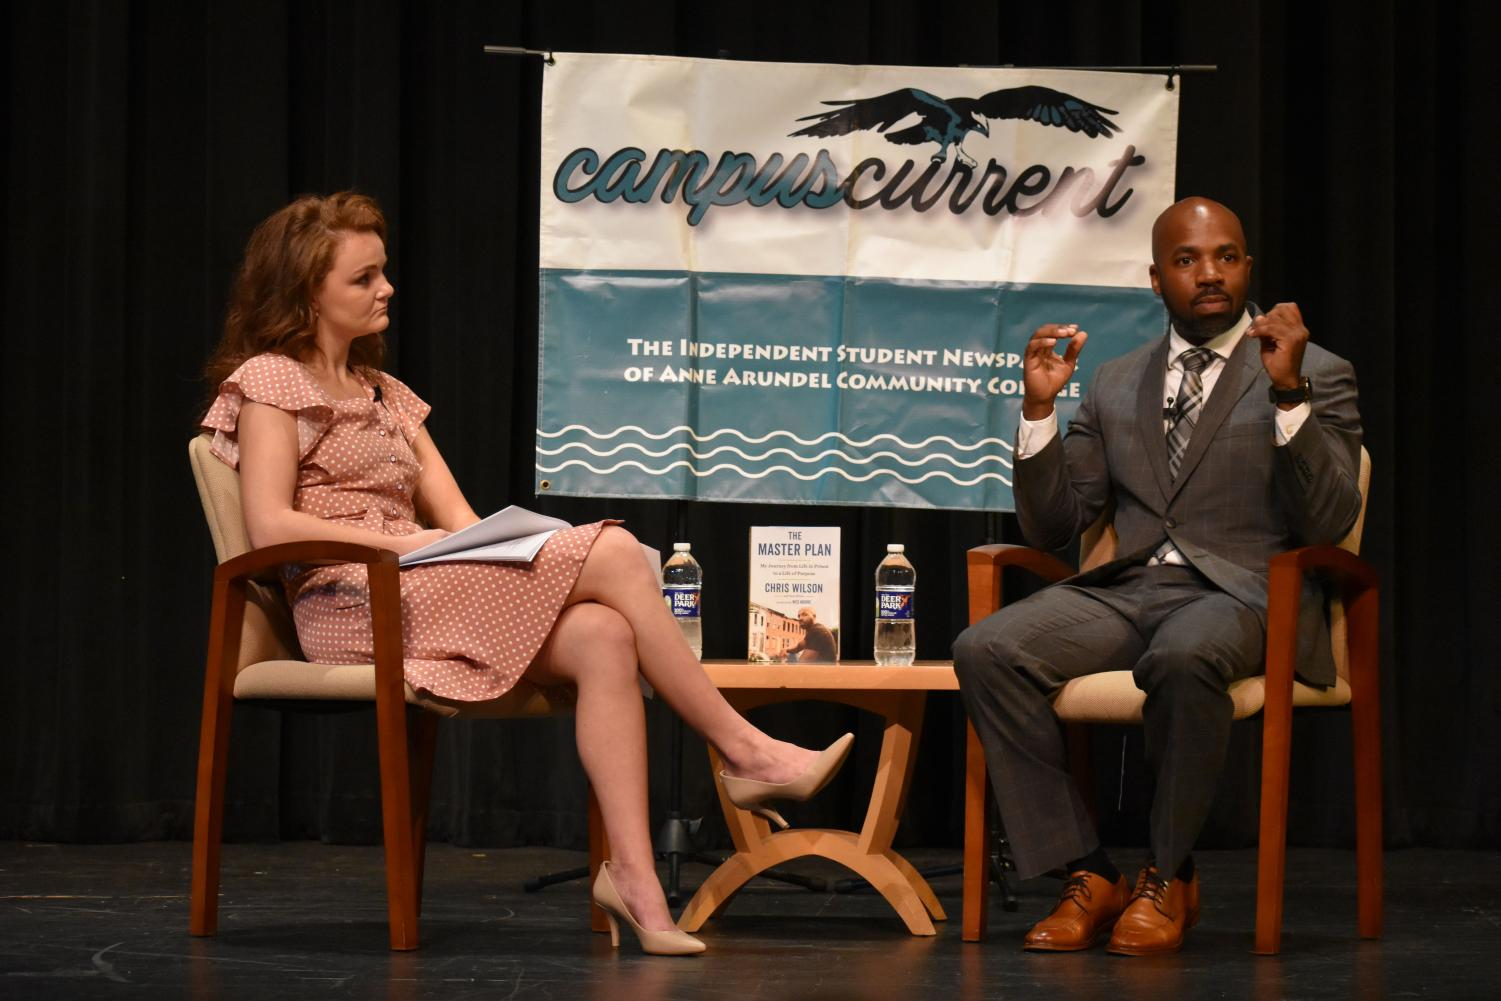 Author Chris Wilson talked about his past, including his time in prison, and life post-incarceration. Shown: Alexandra Radovic (left), Chris Wilson